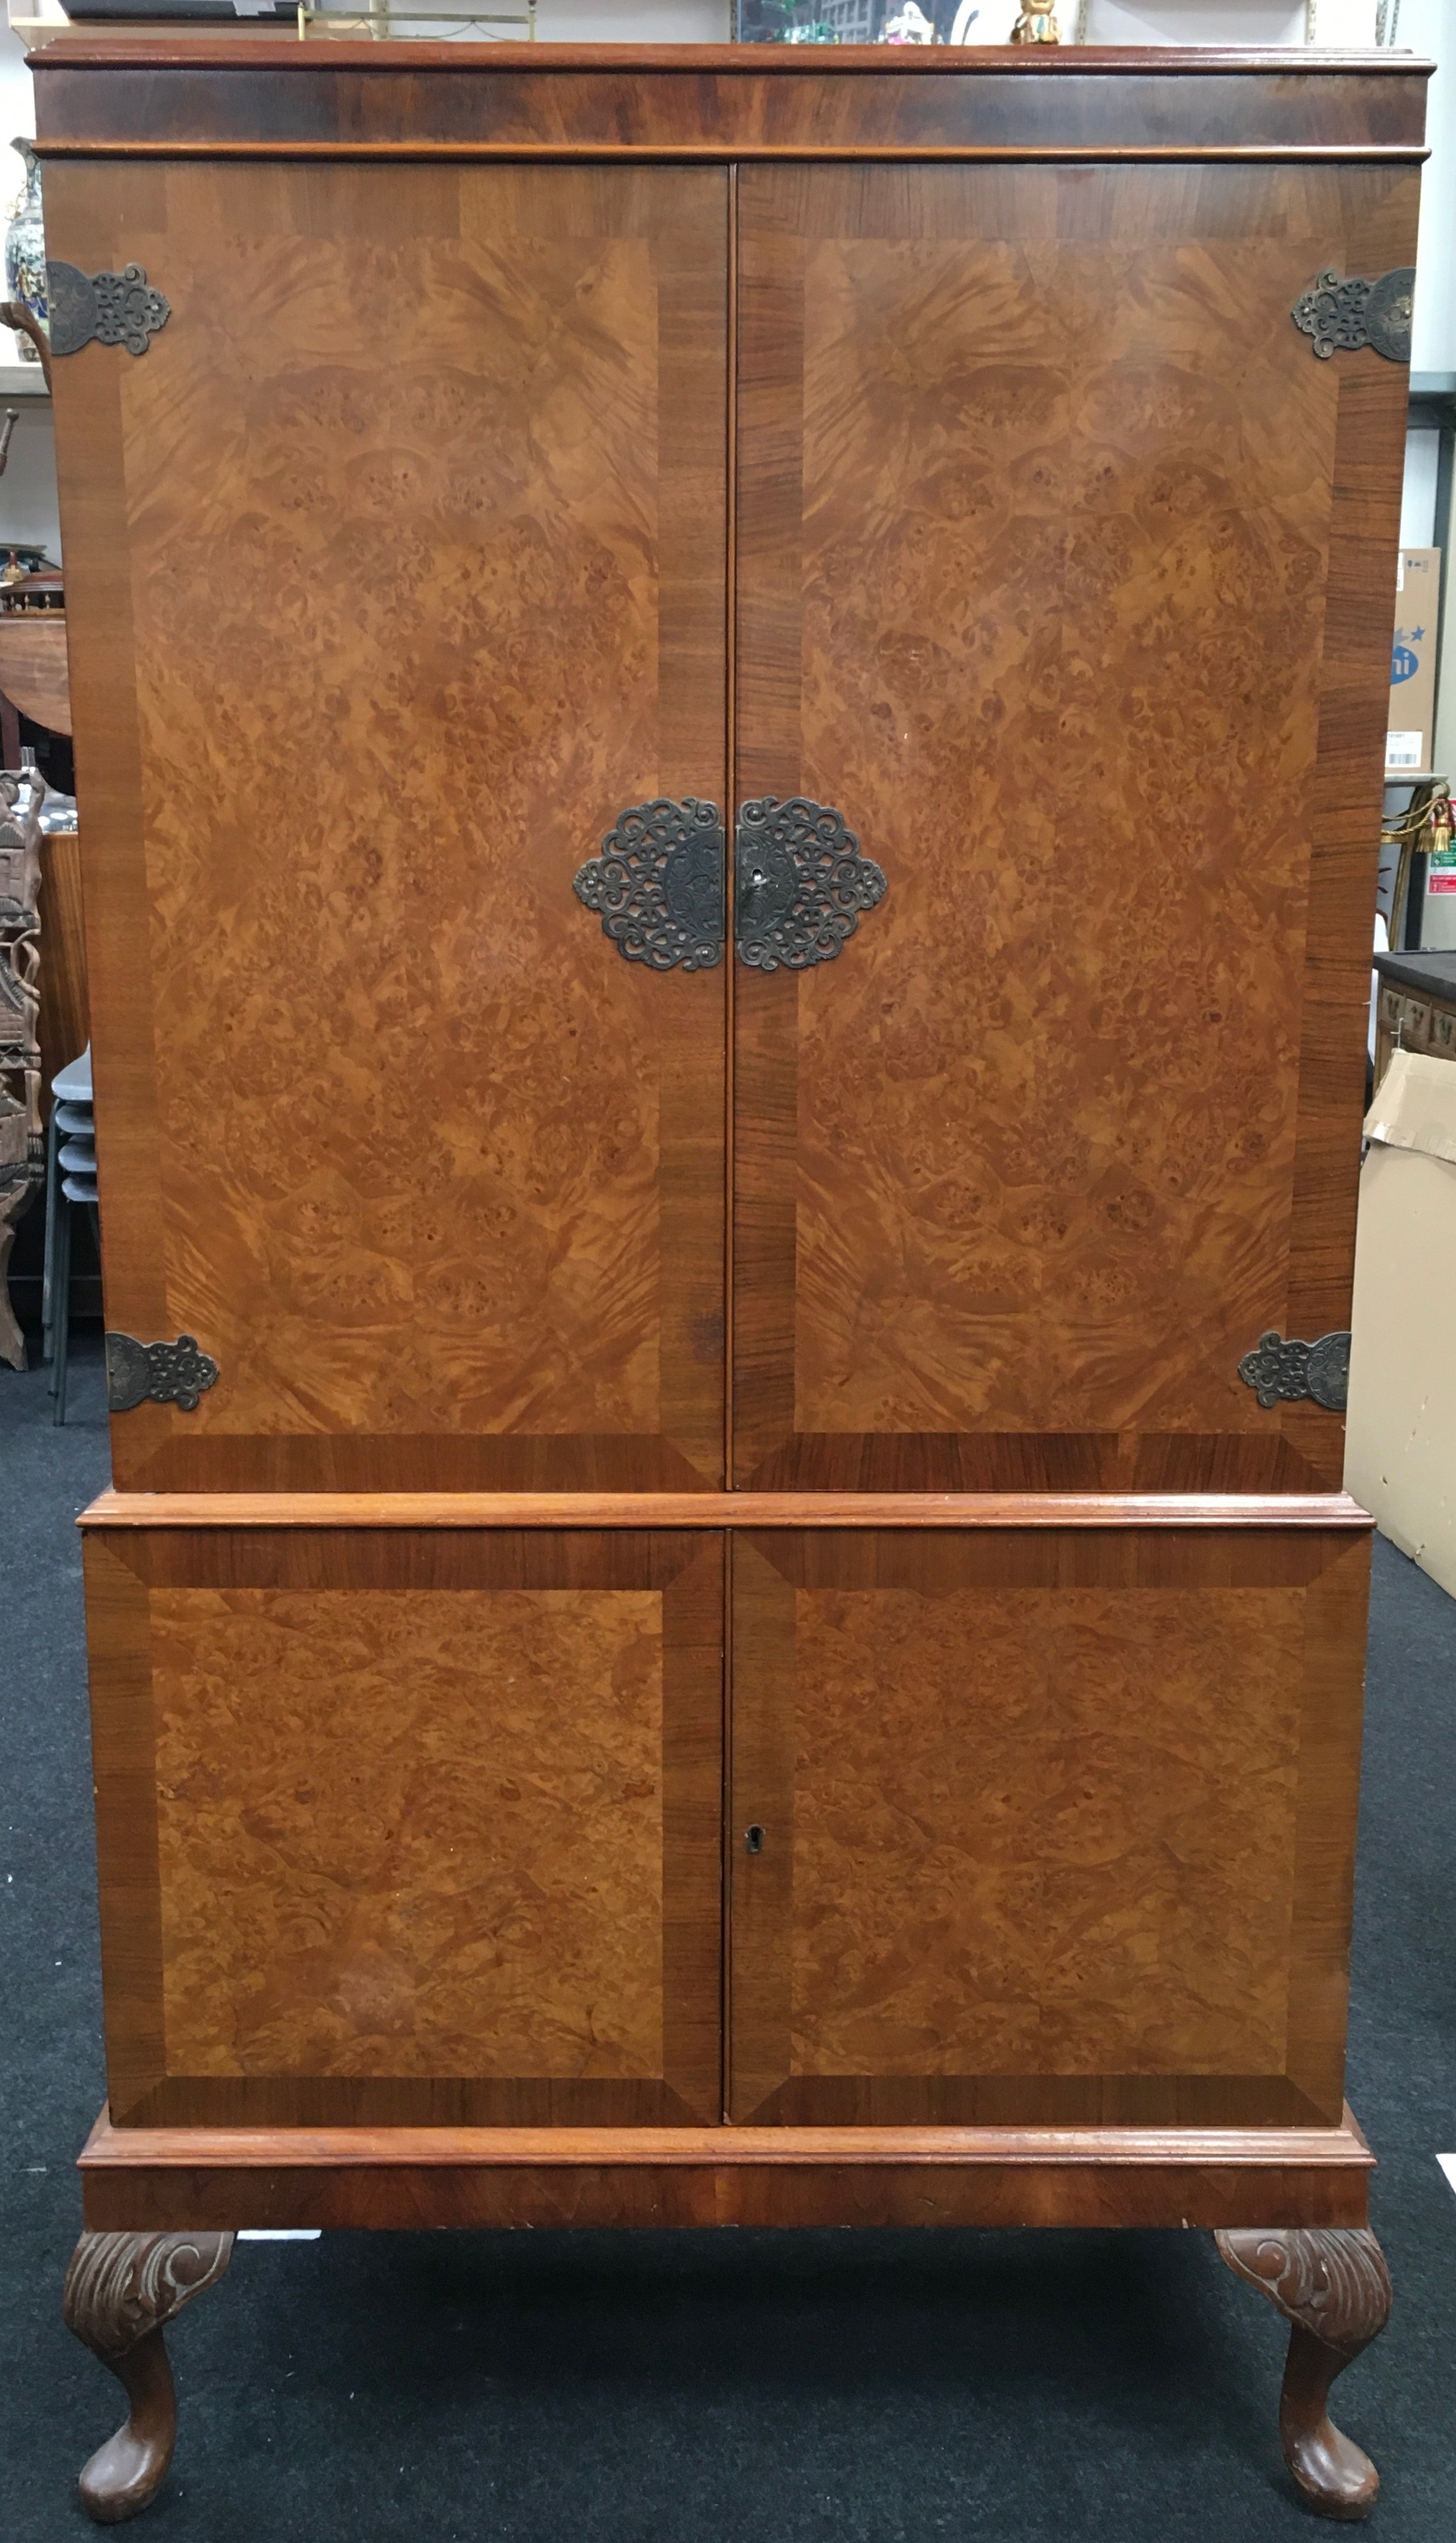 Mahogany alcohol/bar display unit on cabriole legs fitted with two sections includes key together